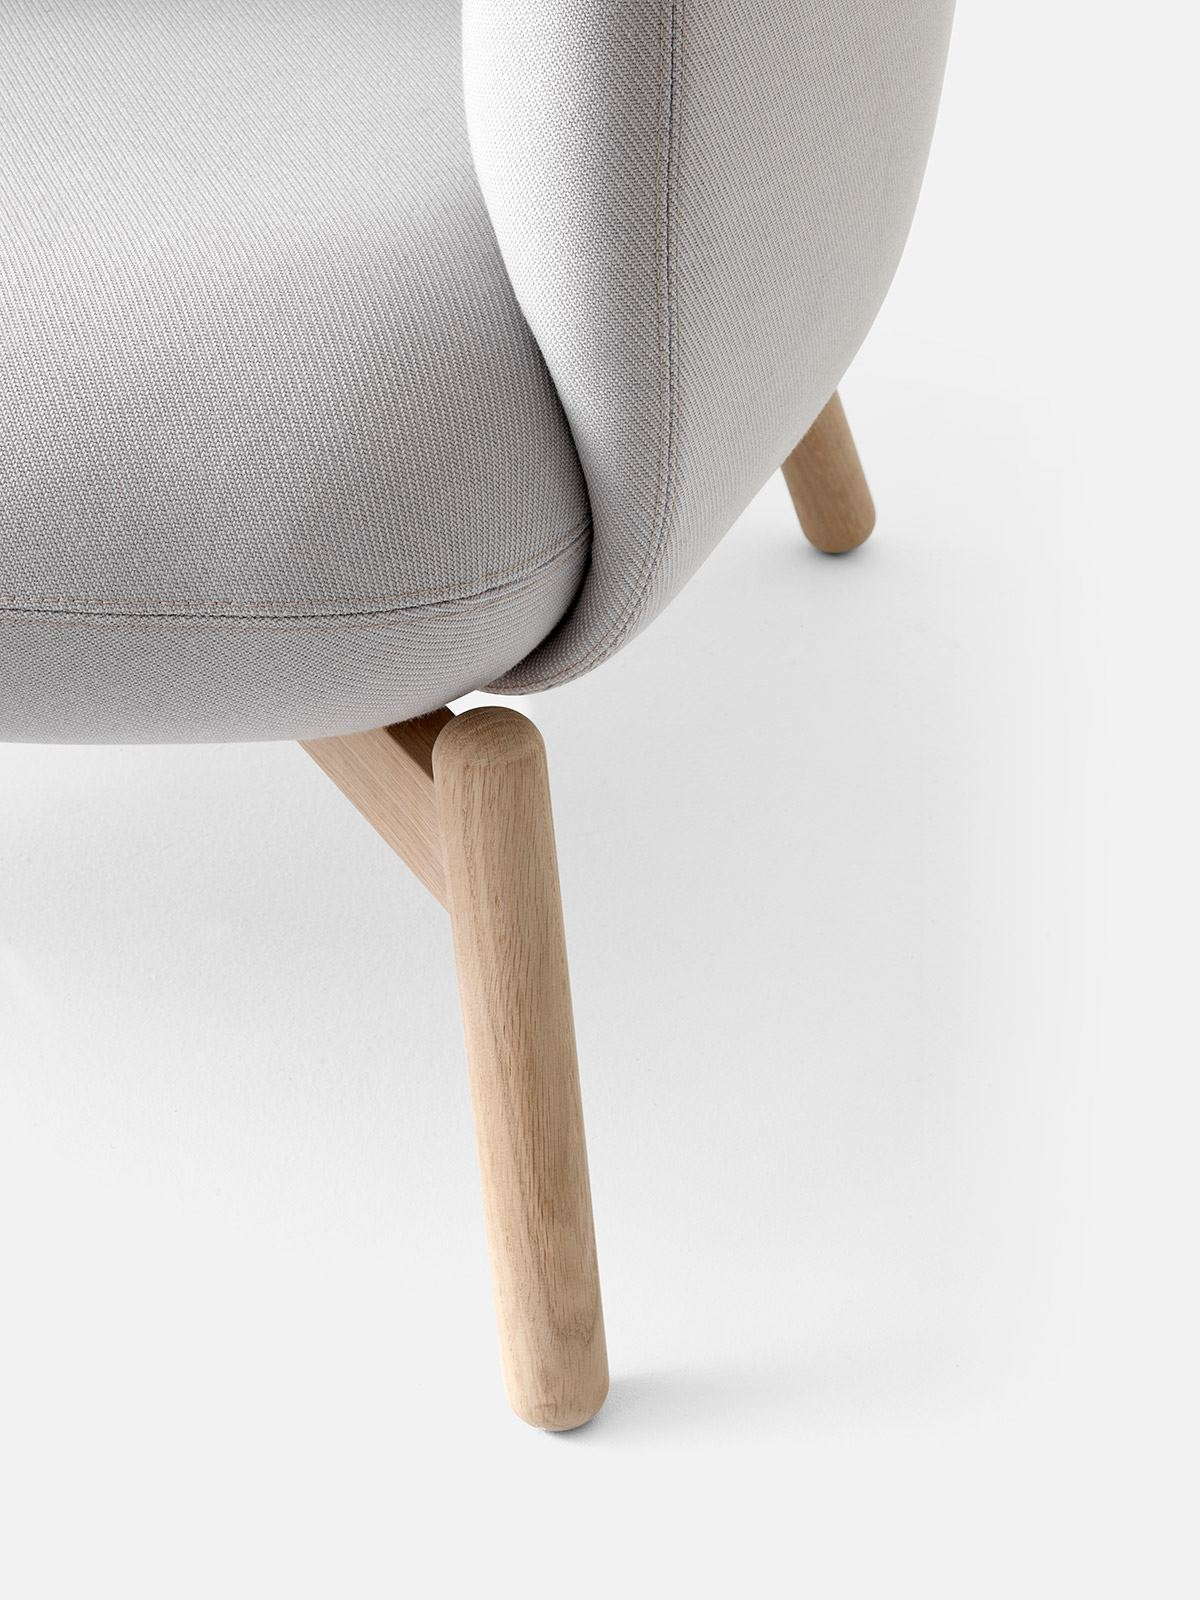 +Halle Easy Nest XL Chair Wood Finish